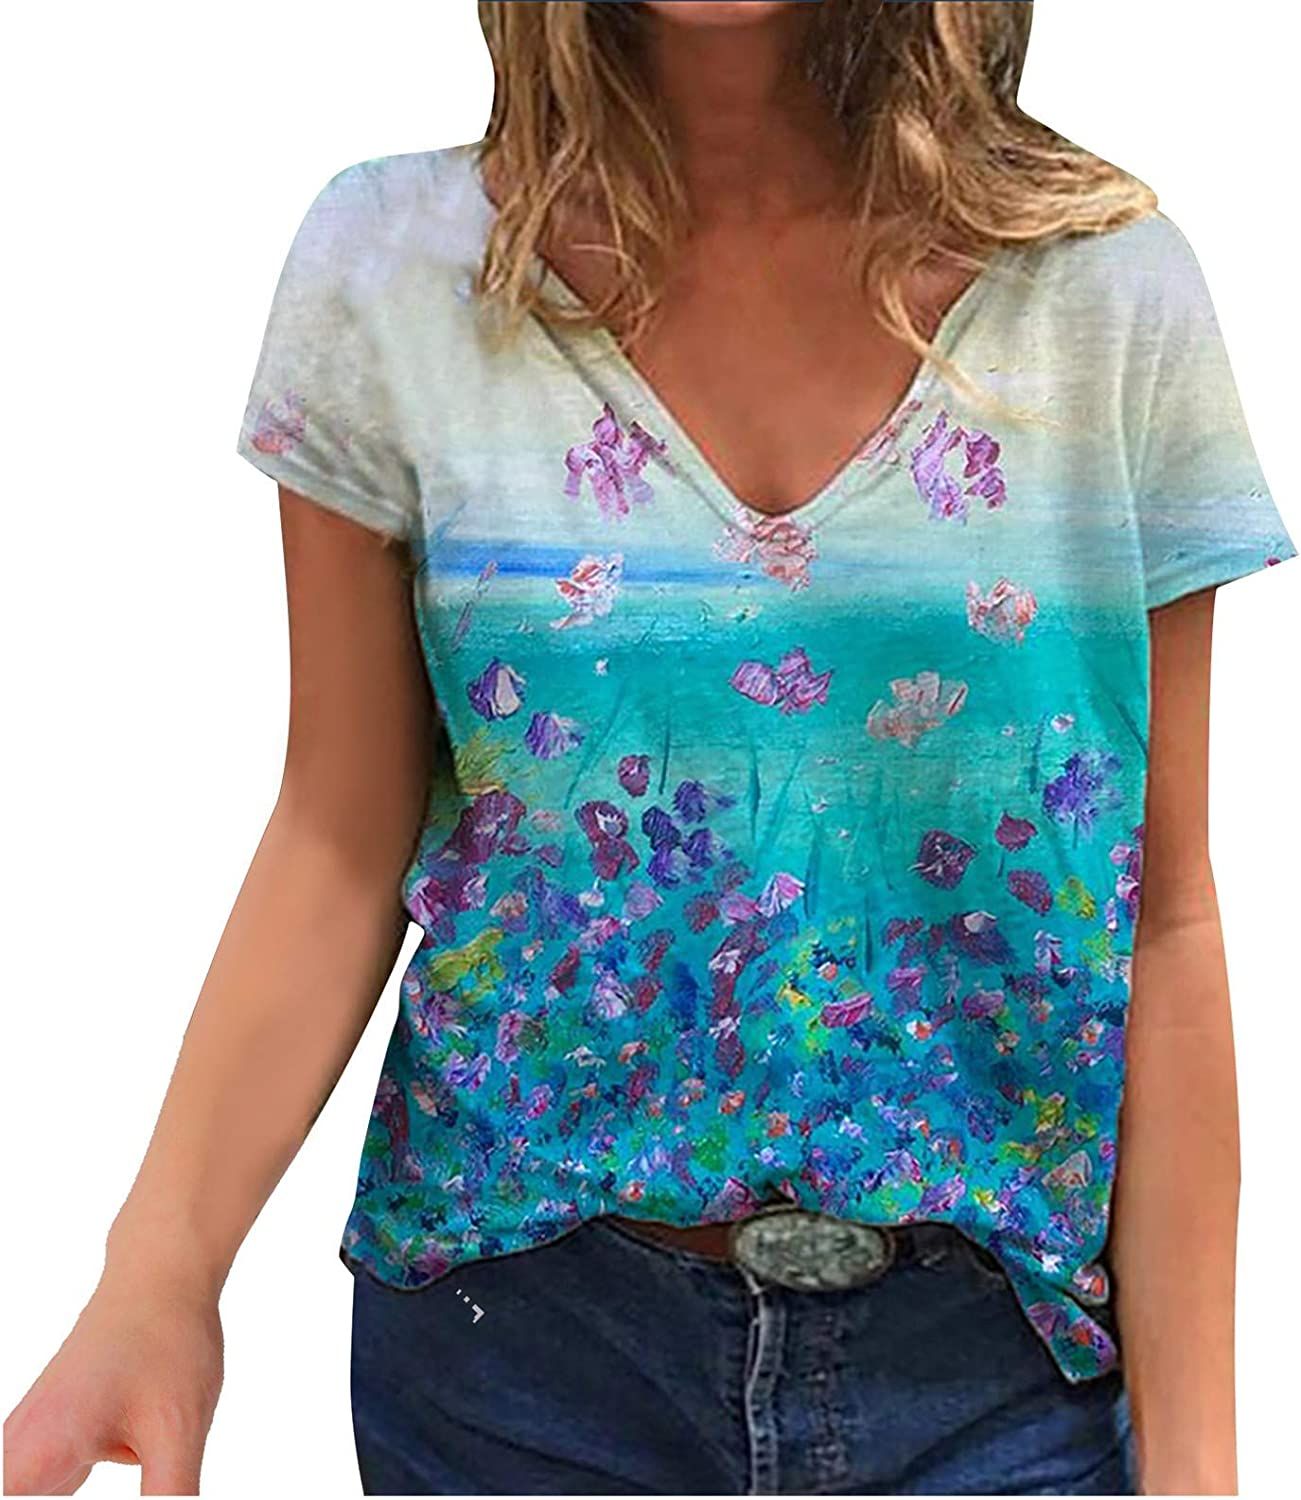 Retro Printed T Shirts for Women,Colorful Print V Neck Short Sleeve Summer Plus Size Tops